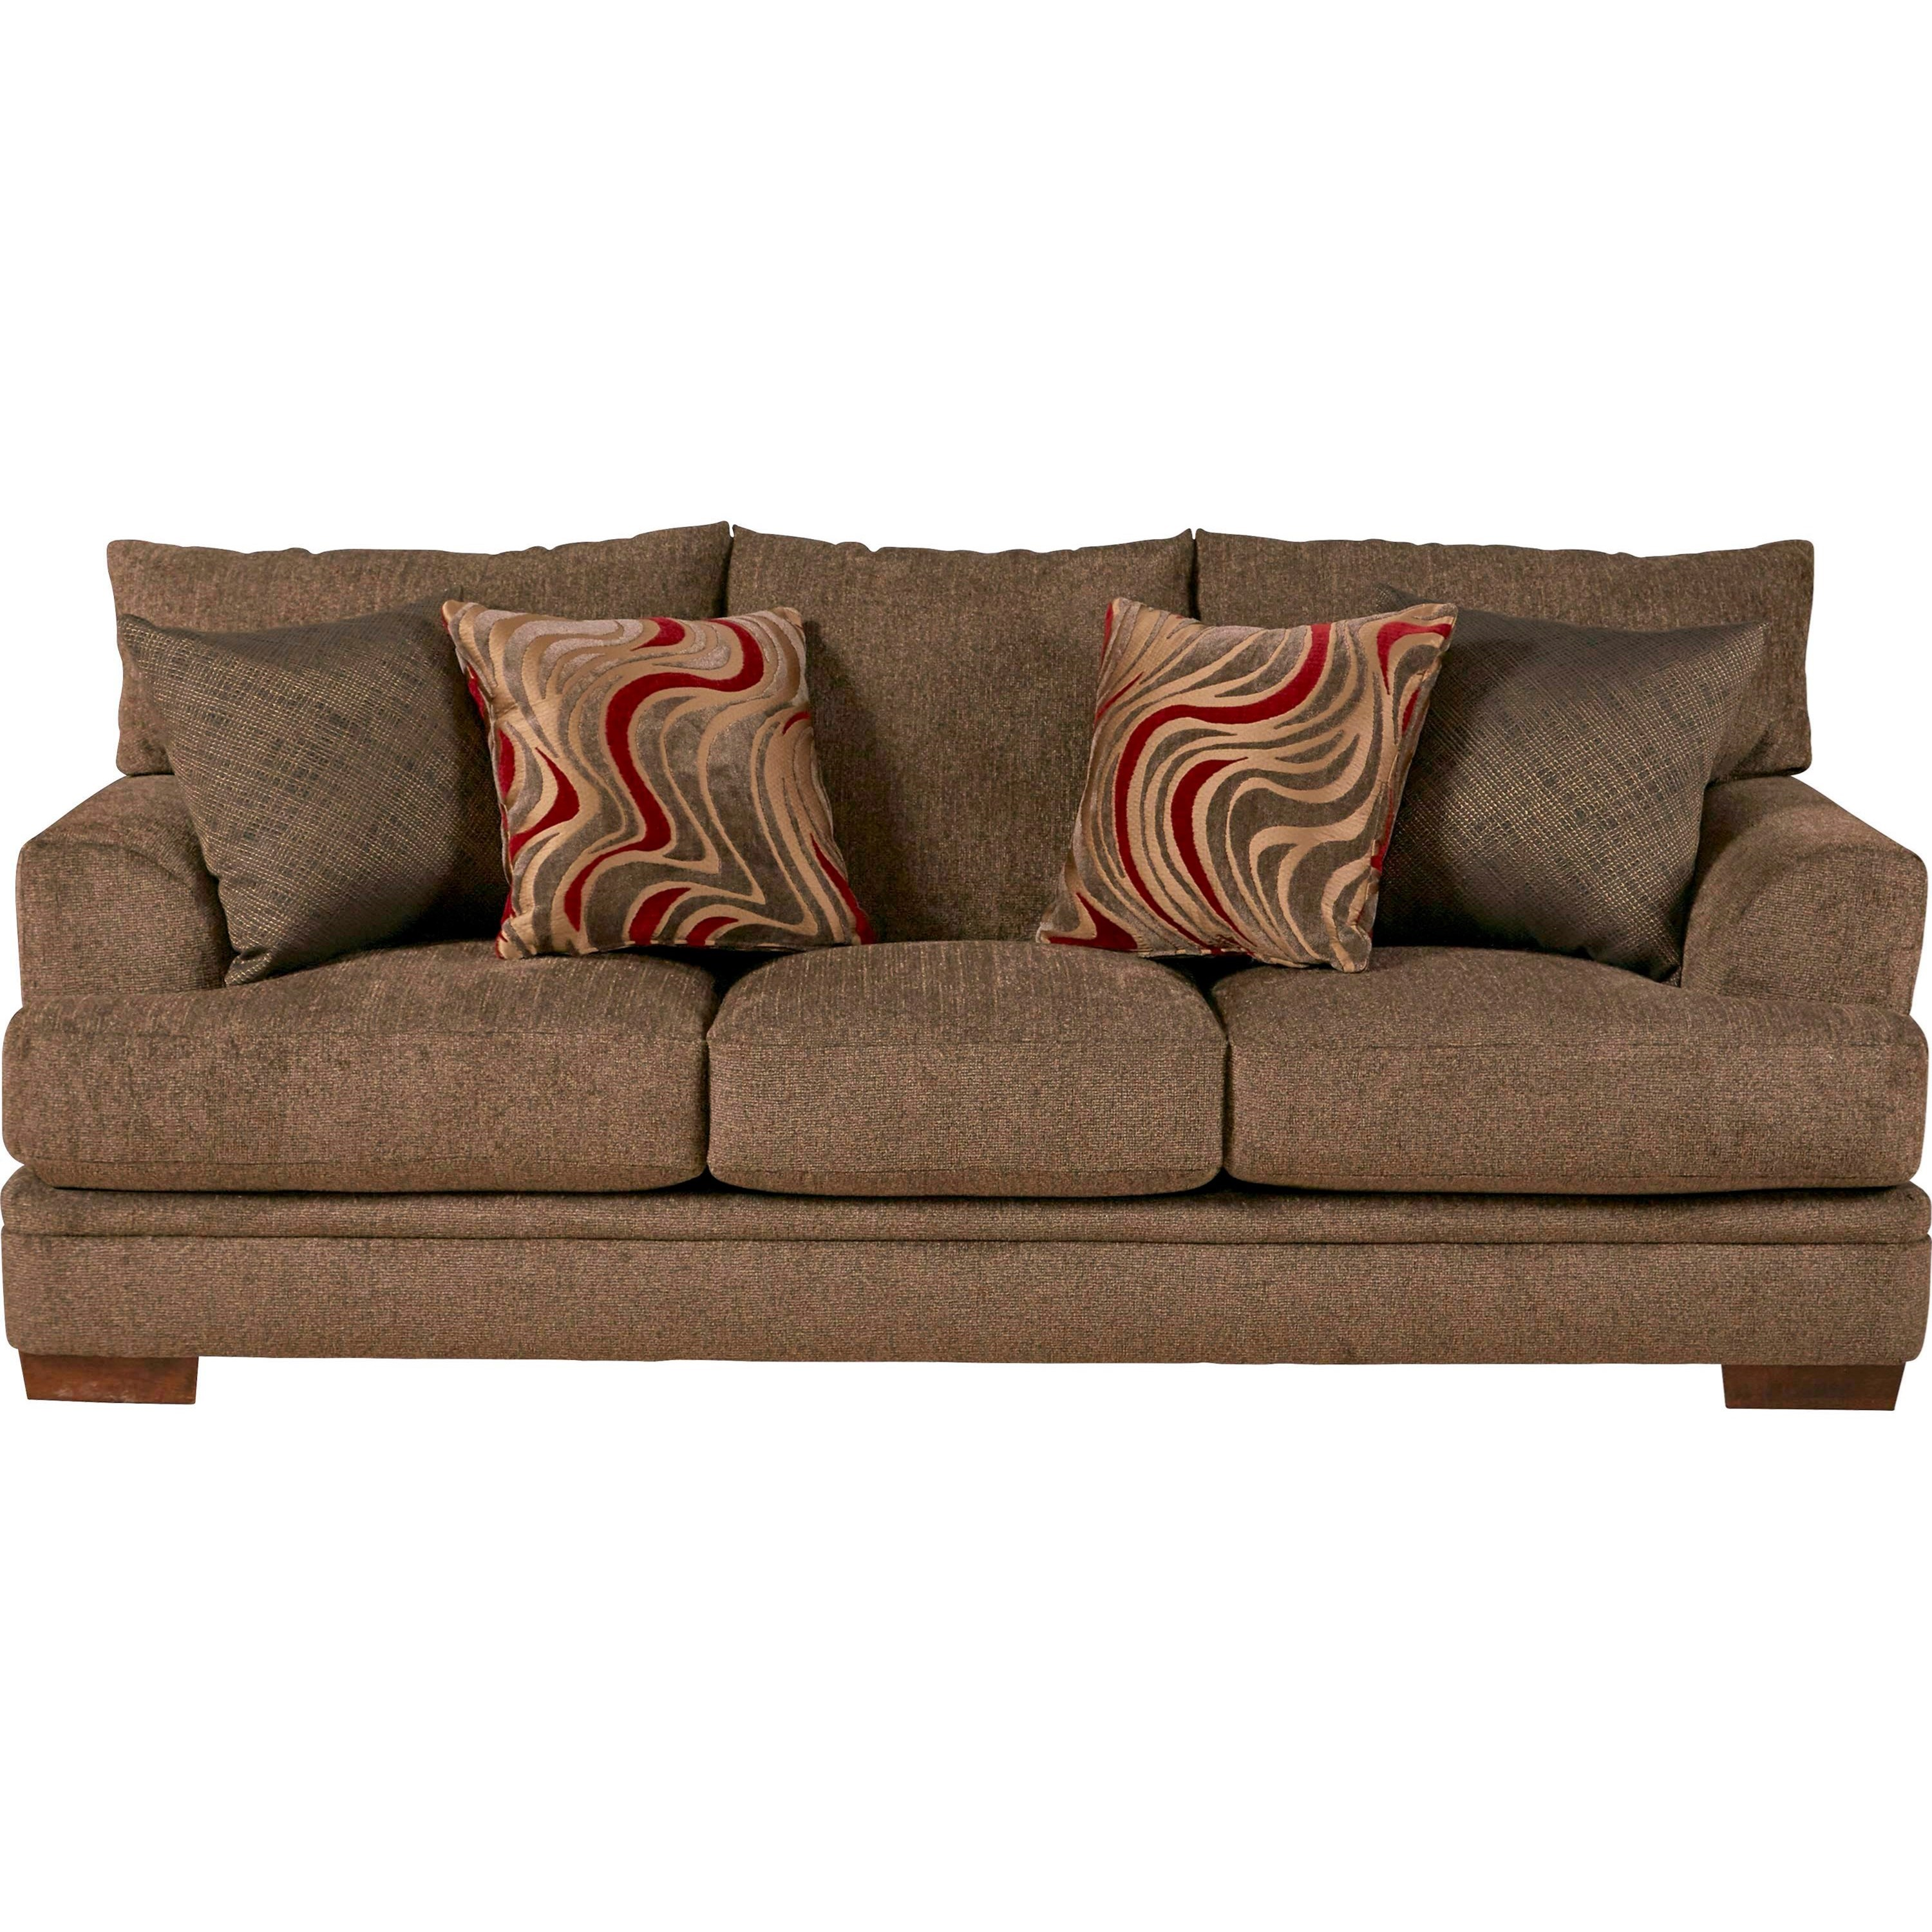 Jackson Furniture Crompton Sofa with Casual Style - Item Number: 4462-03-2000-56